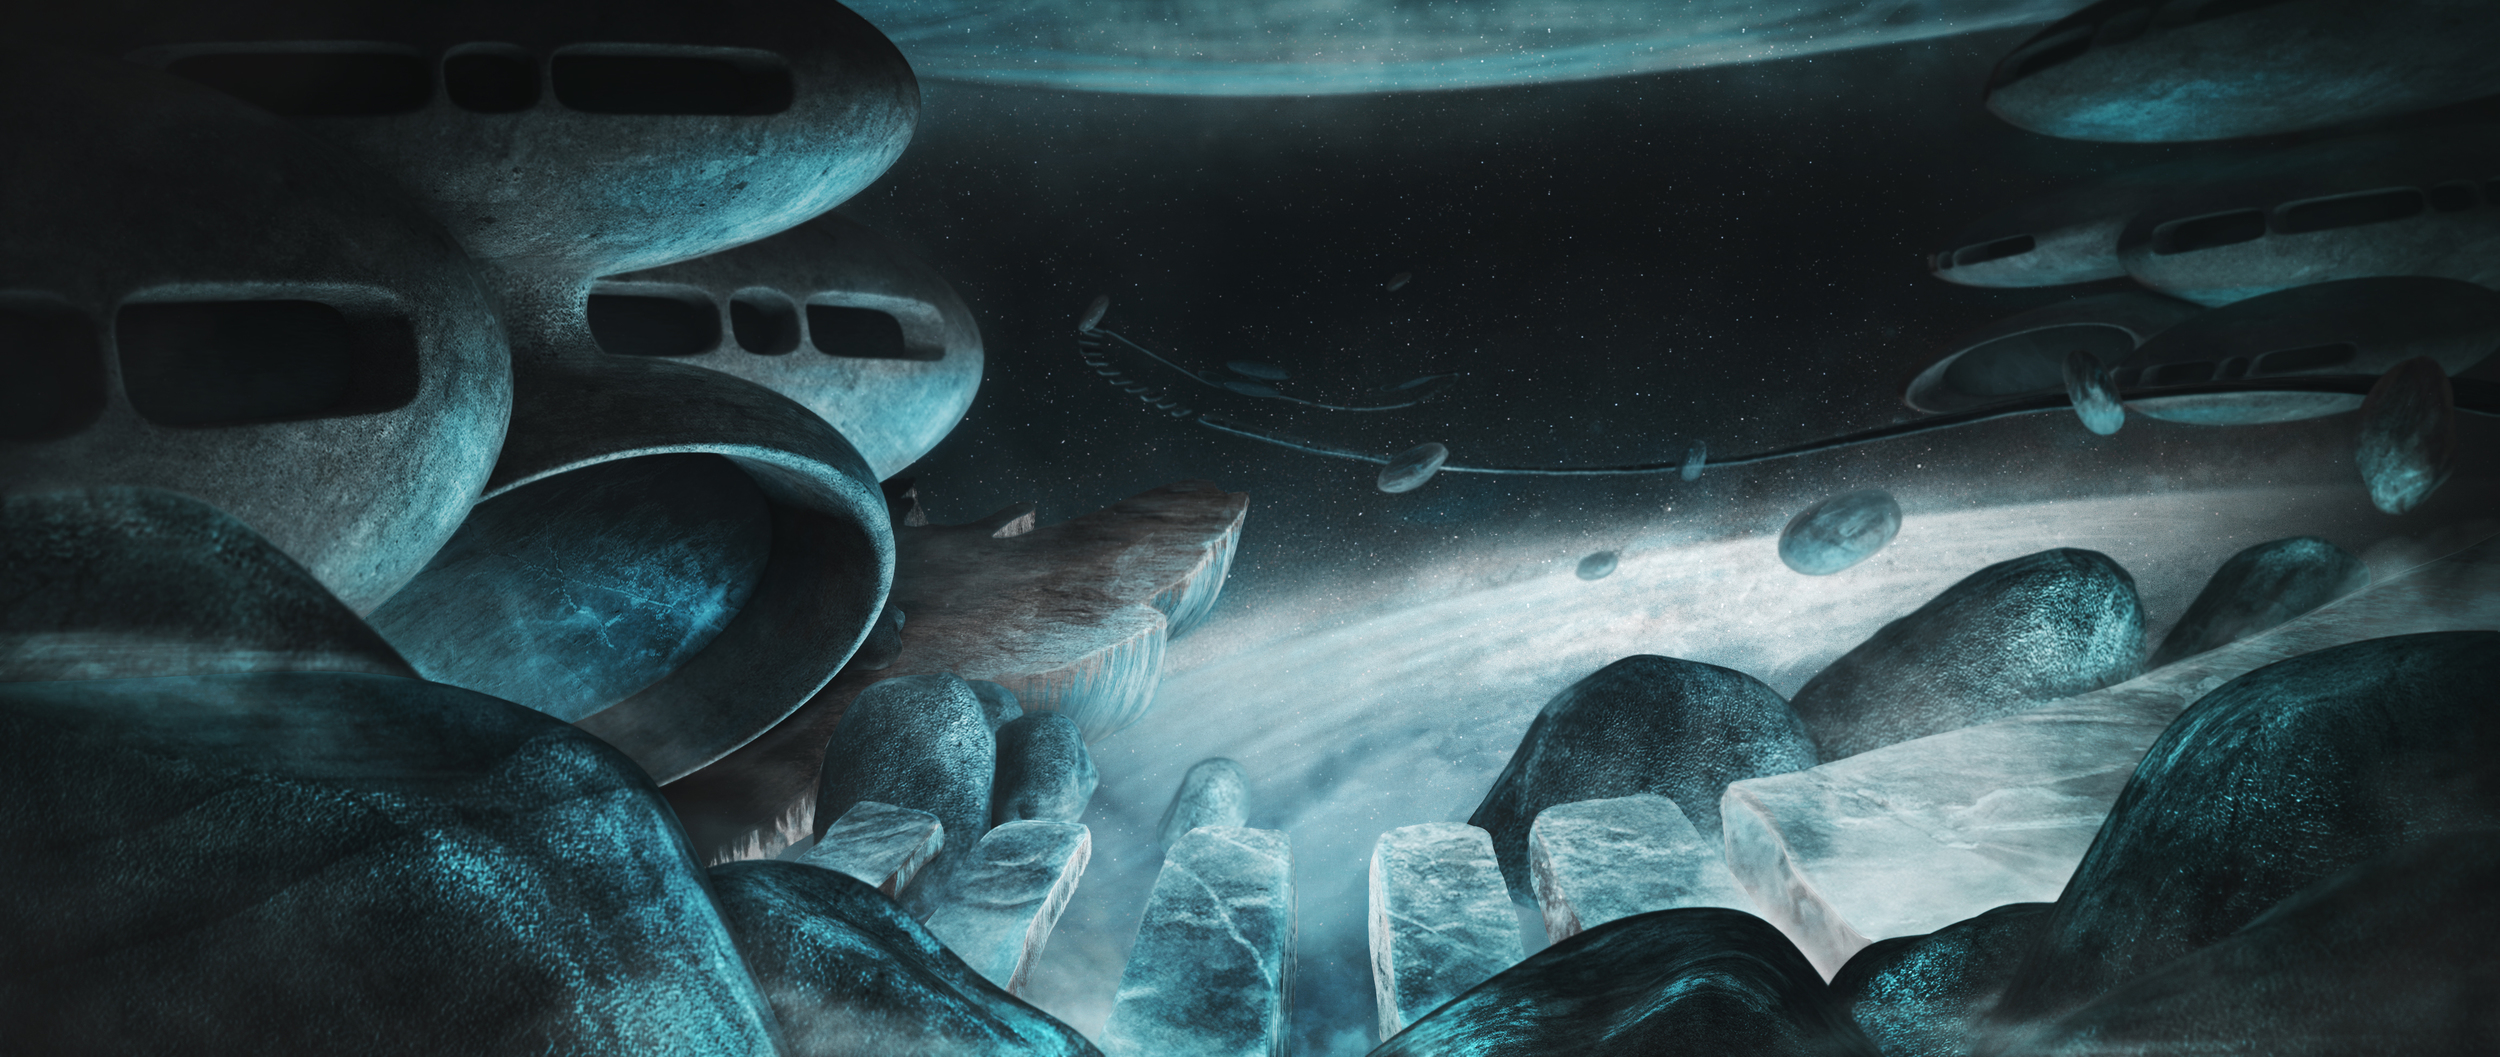 Galactic Drifters Matte Painting by Peter Clark